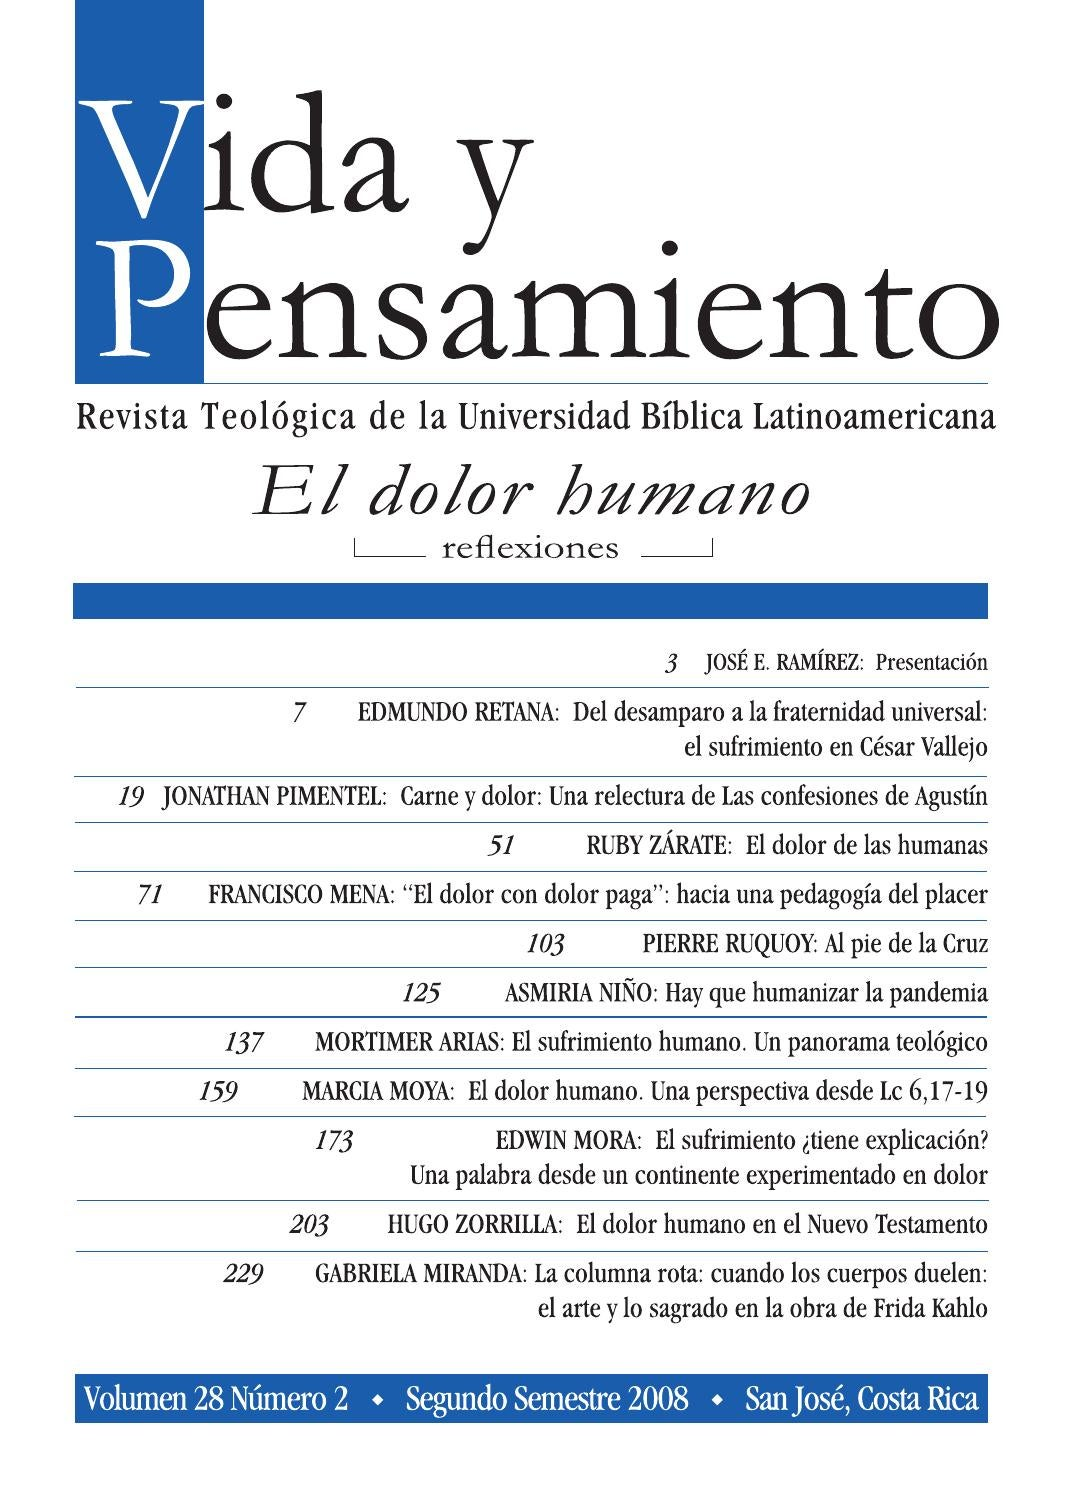 El dolor humano by Universidad Bíblica Latinoamericana - issuu